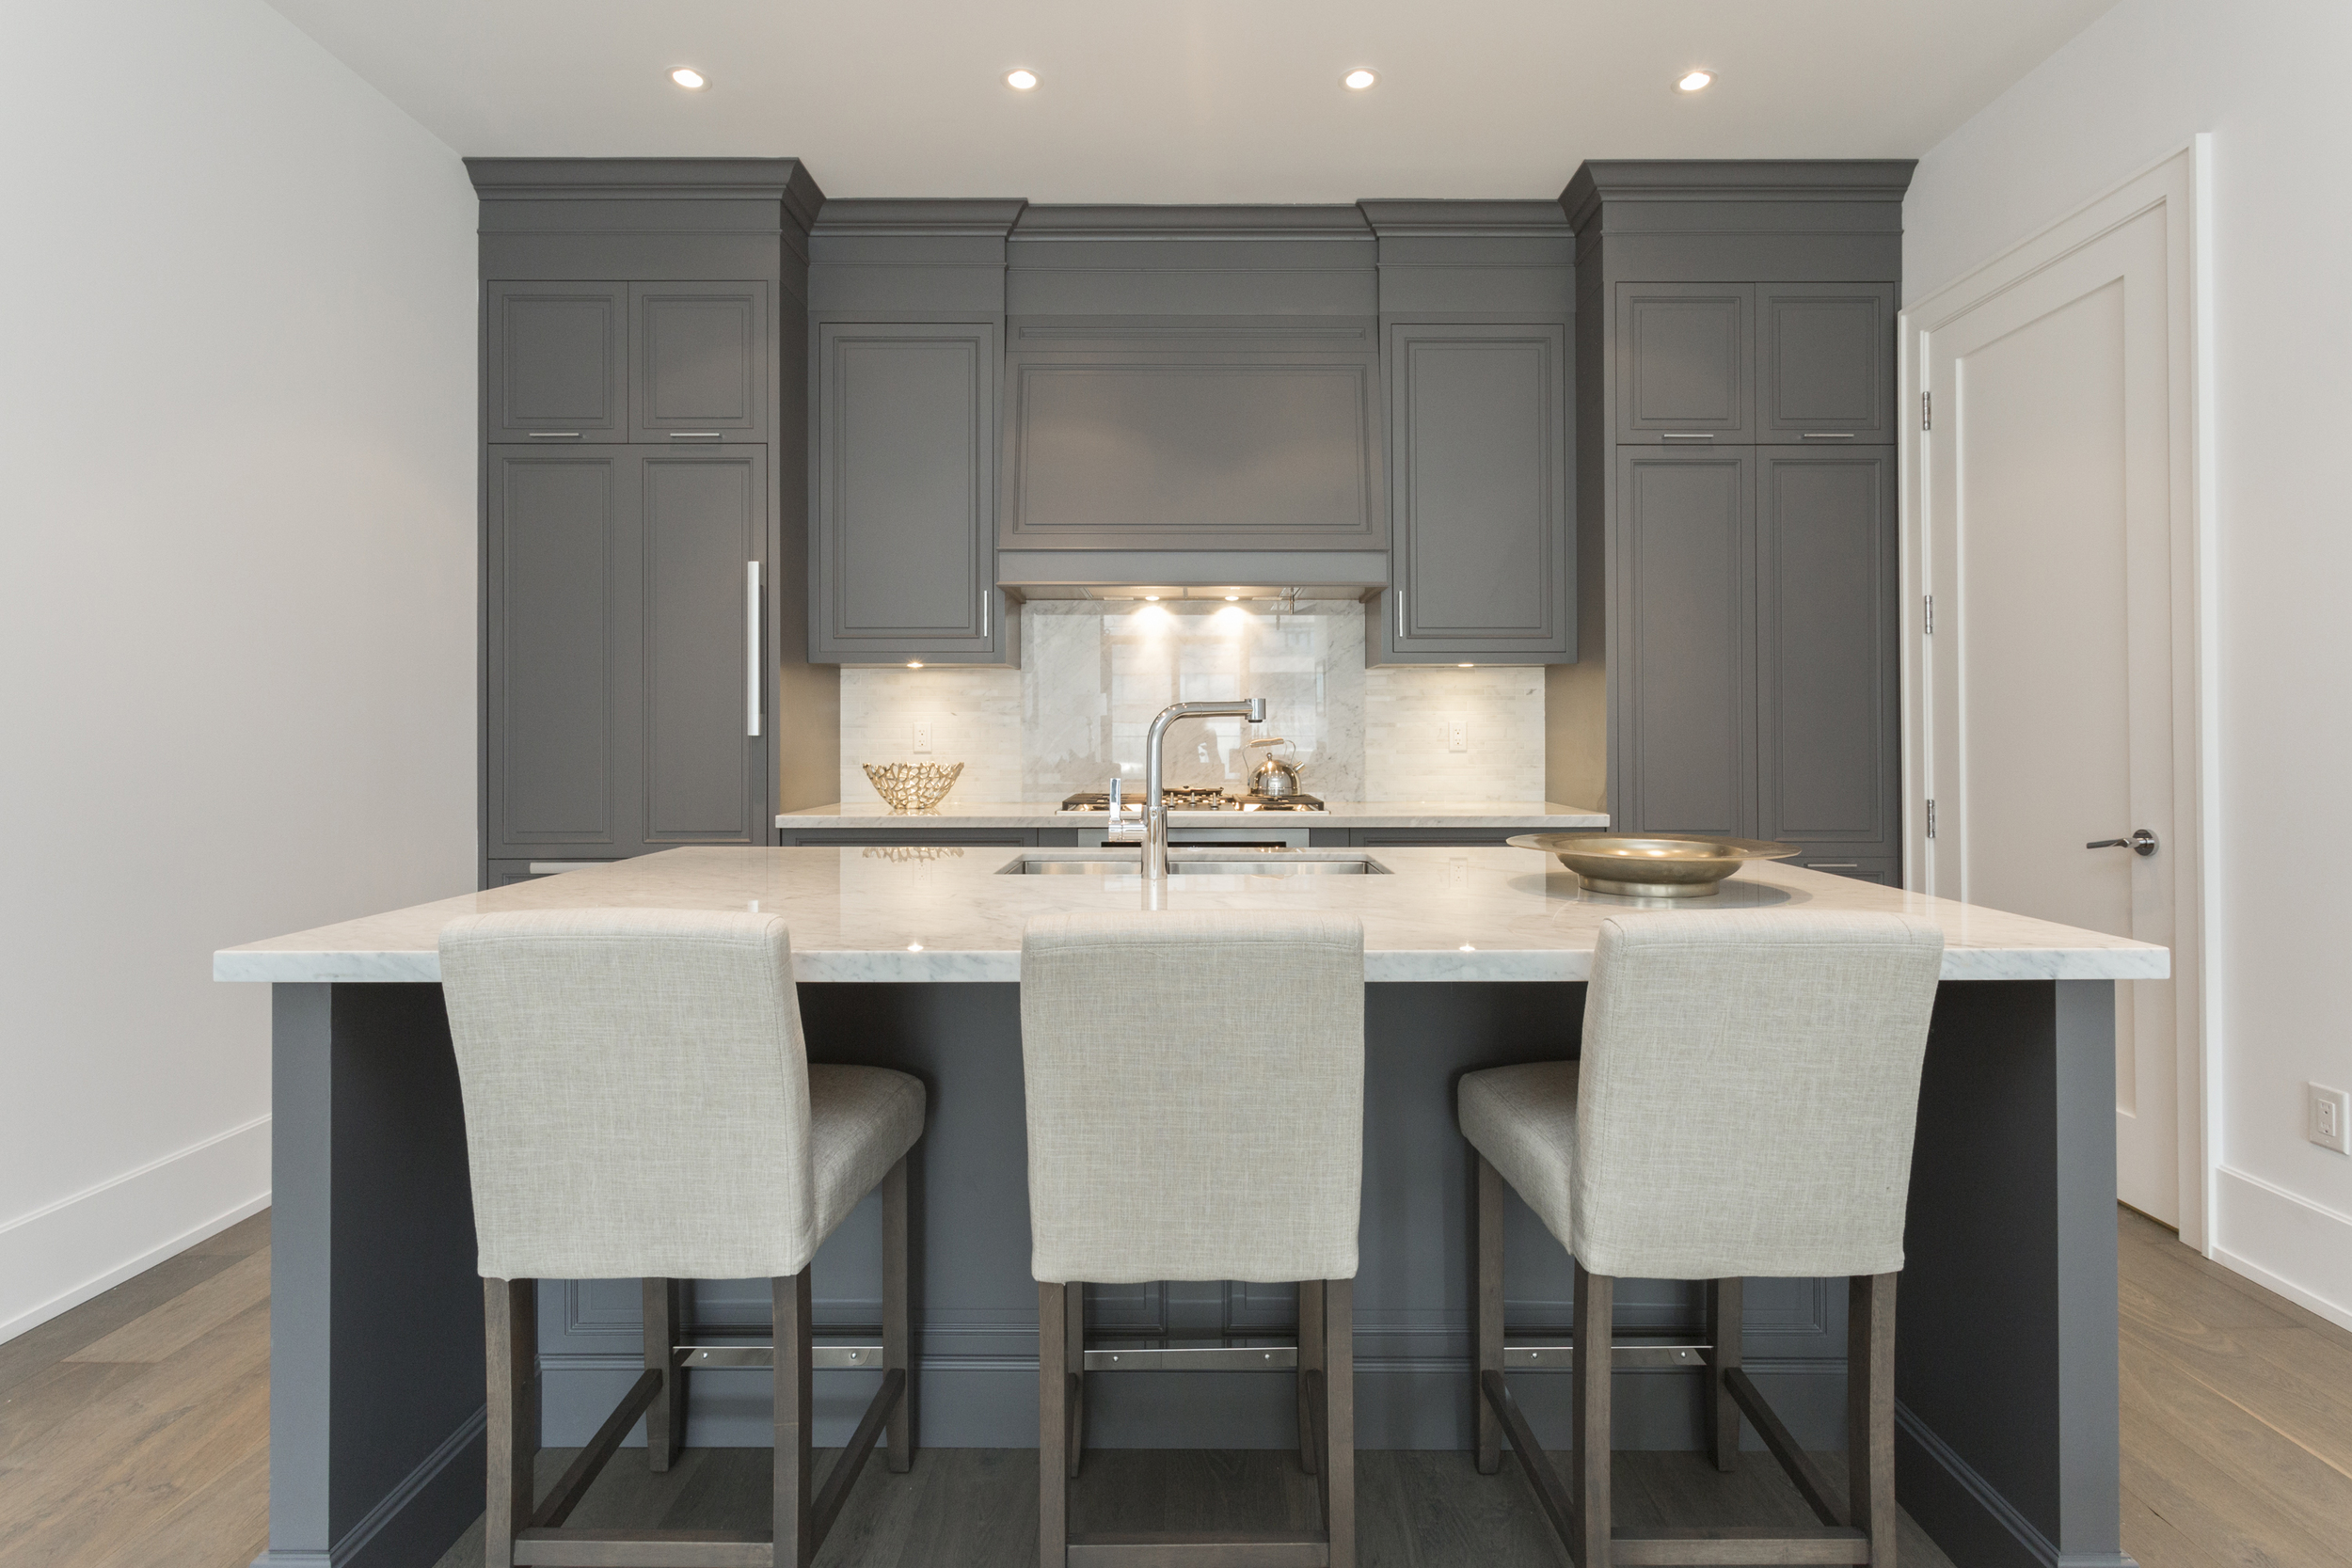 The gorgeous custom kitchen.Photo by  My Home Viewer.